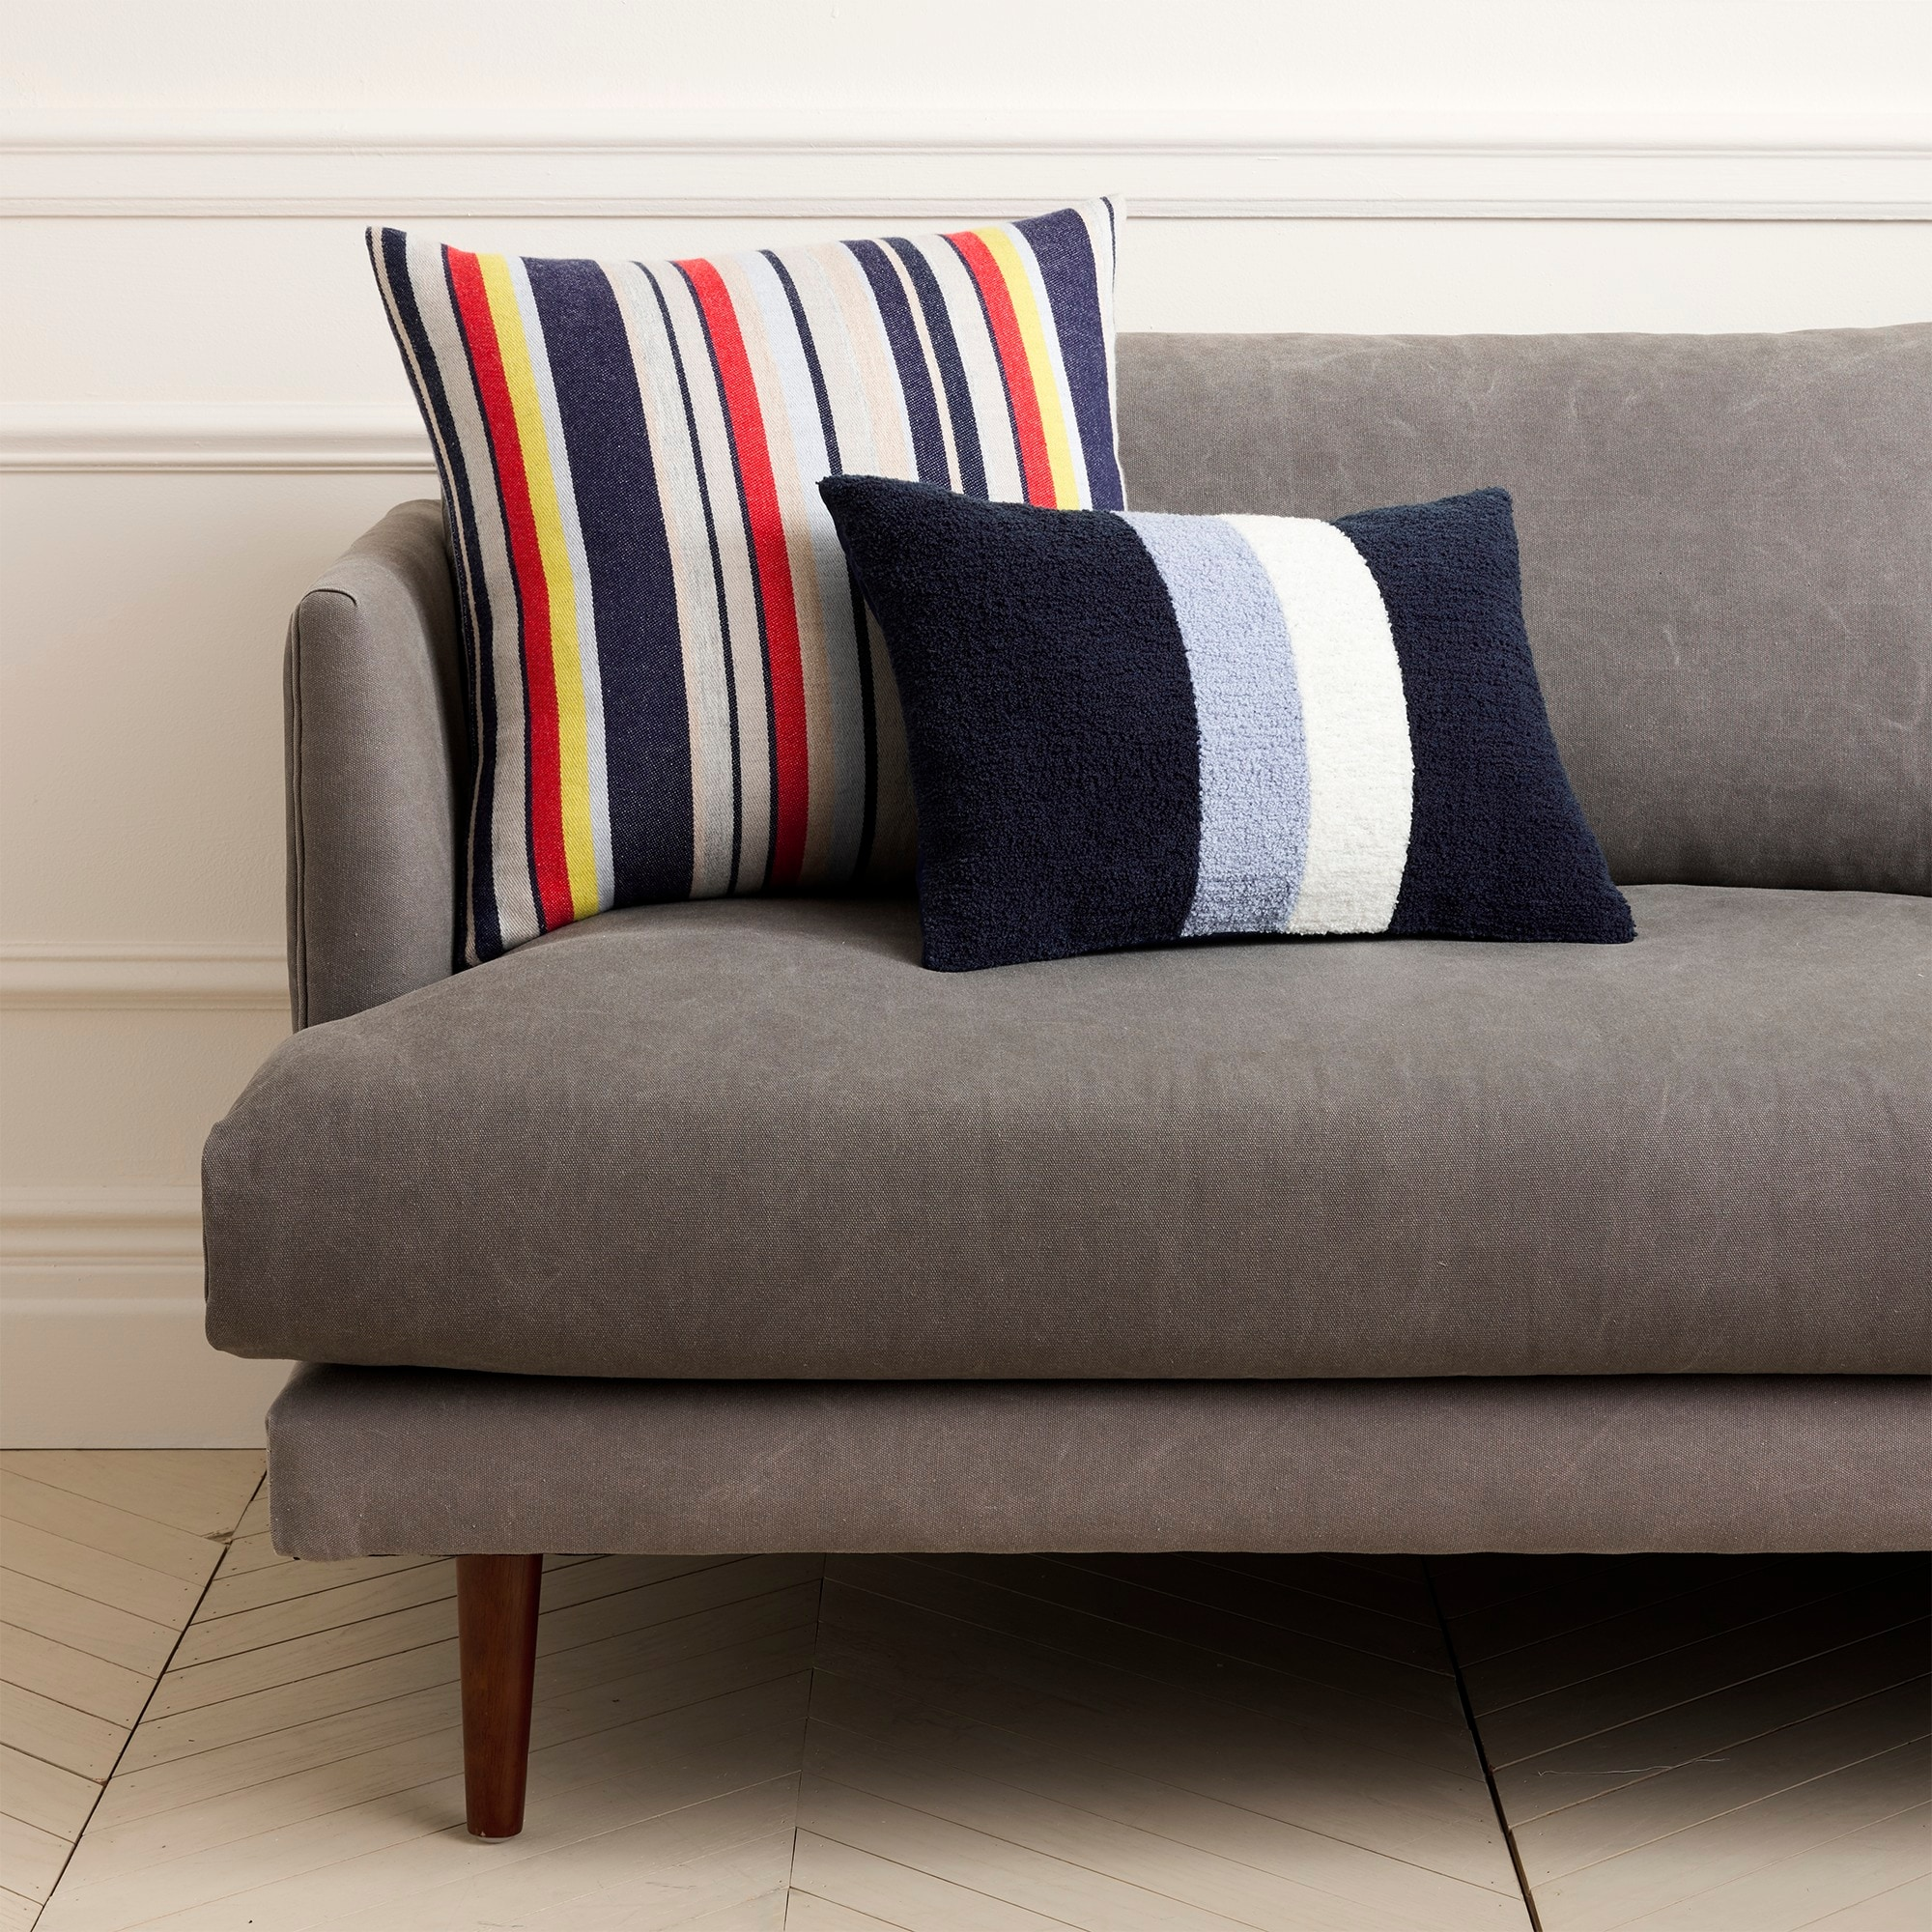 Image 1 for J.Crew Home multistripe pillow